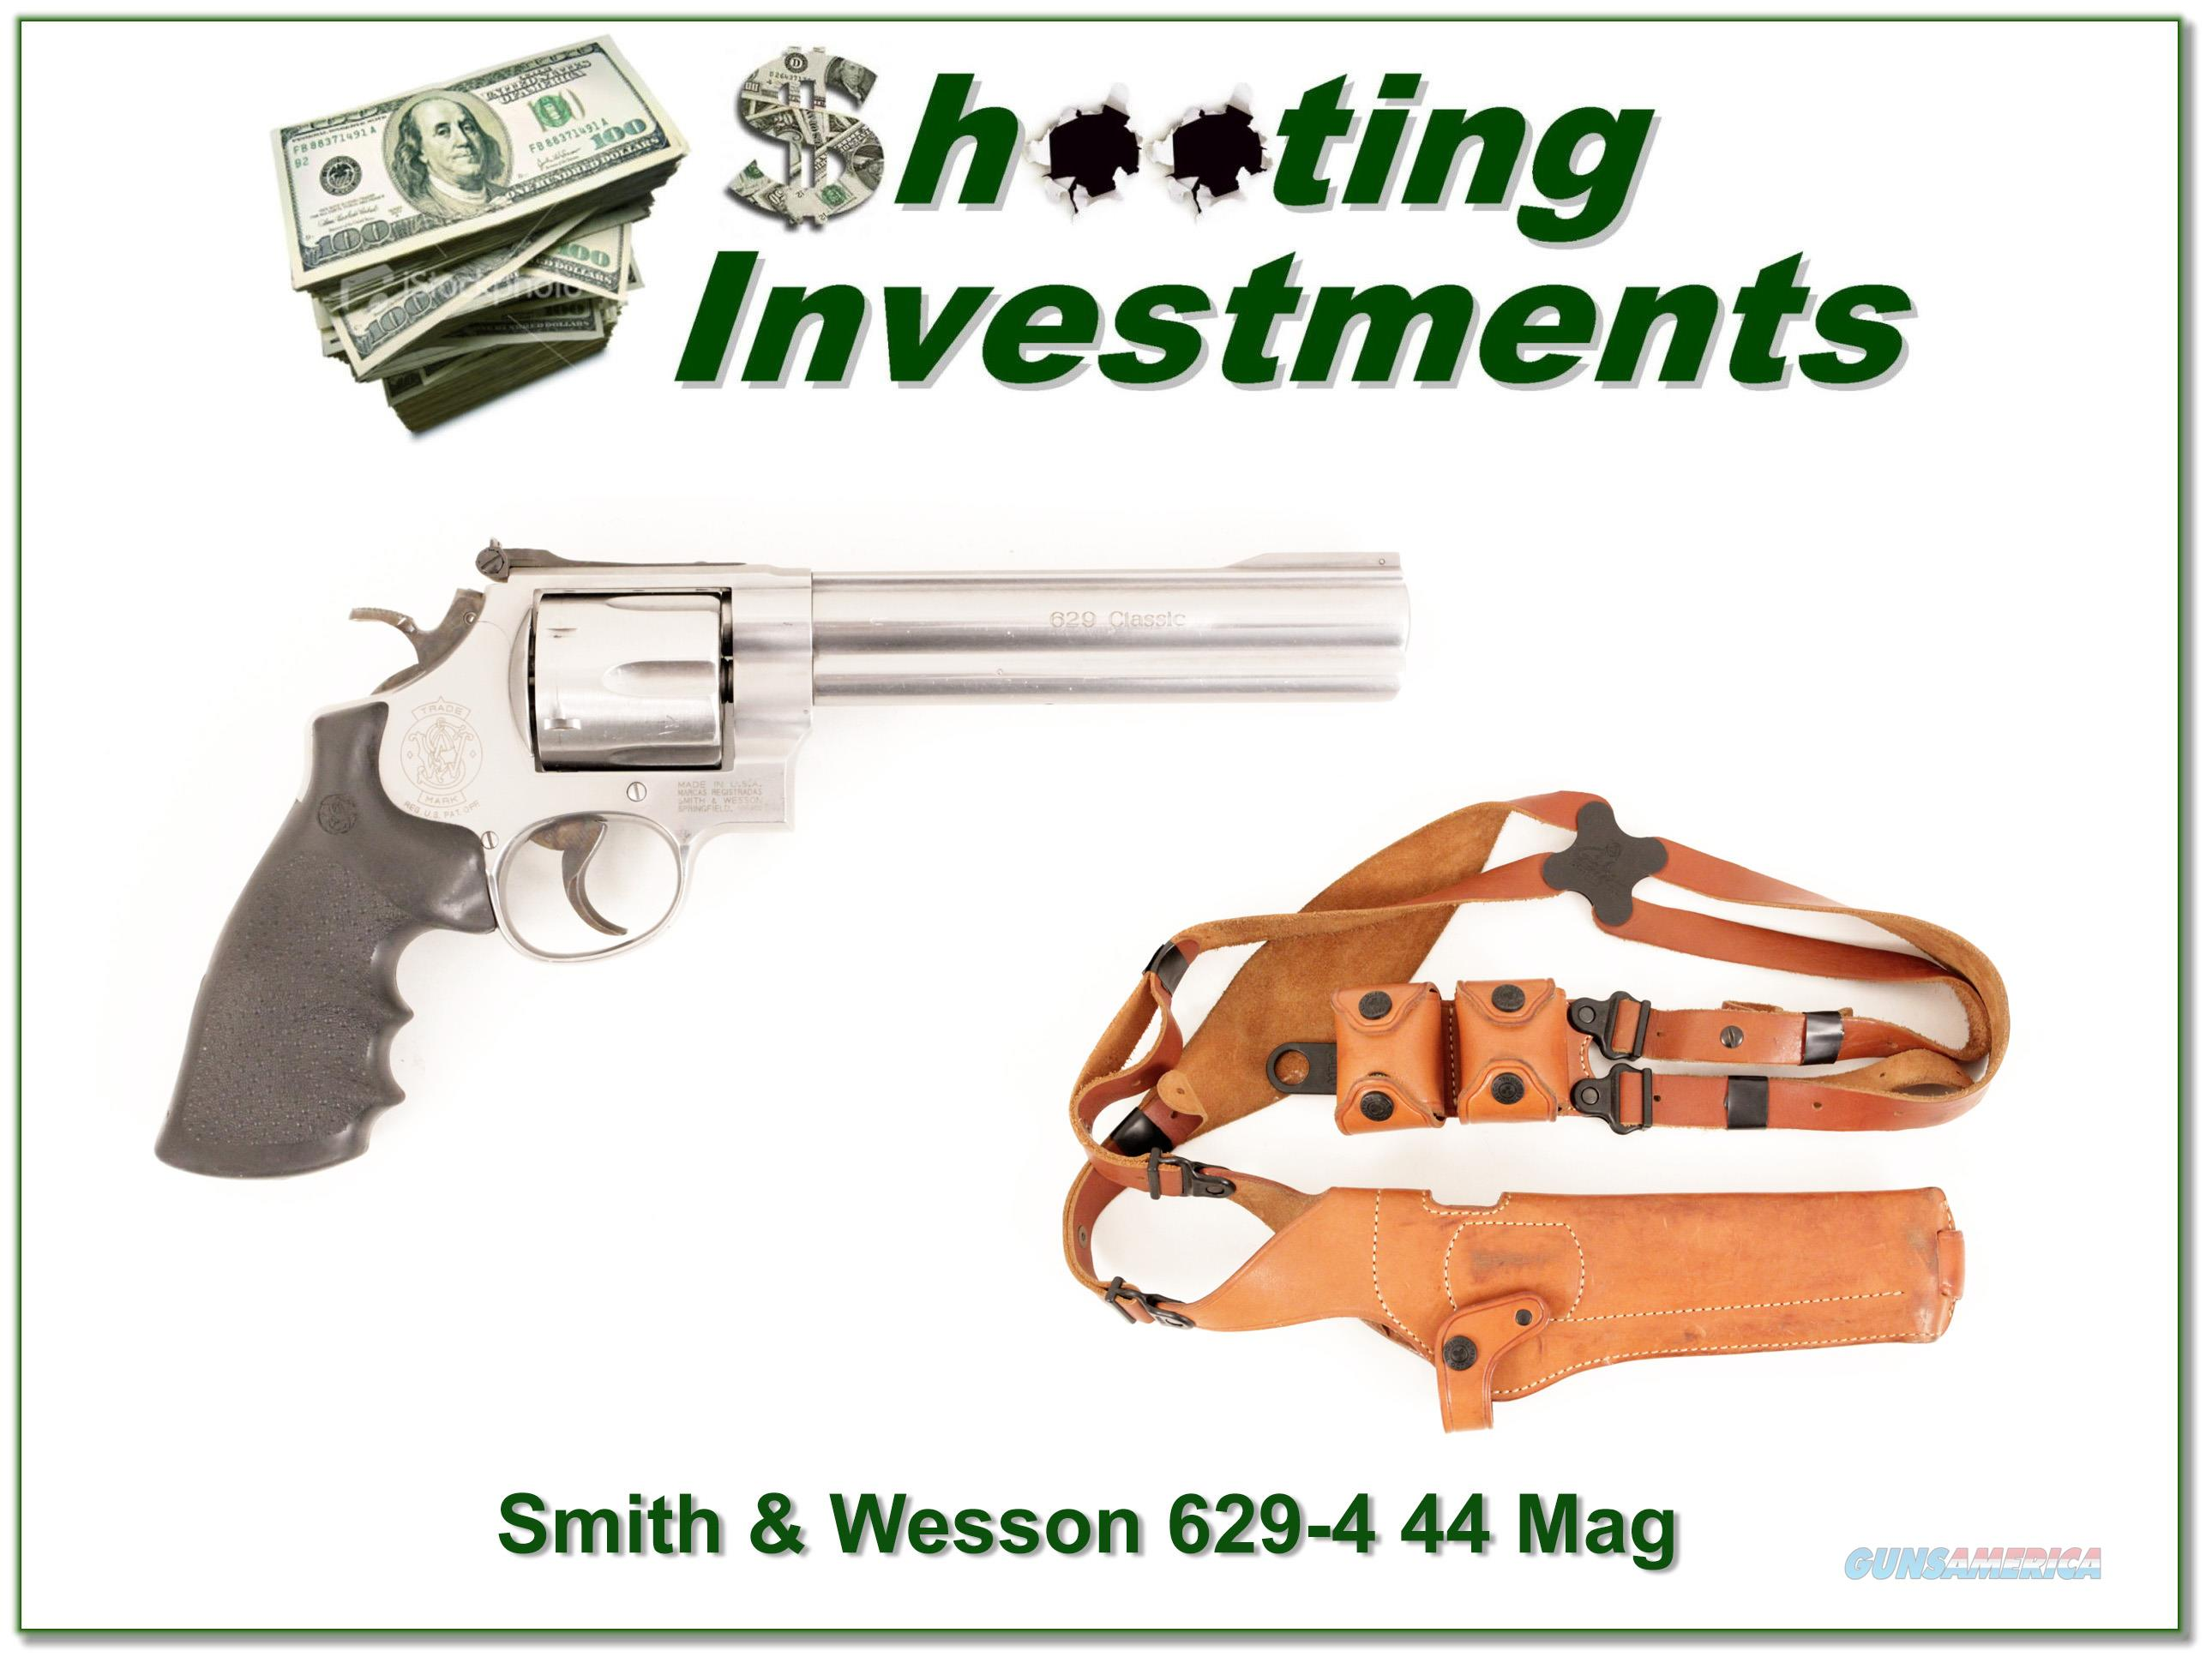 Smith & Wesson Model 629-4 44 Magnum 6.5in Stainless  Guns > Pistols > Smith & Wesson Revolvers > Model 629